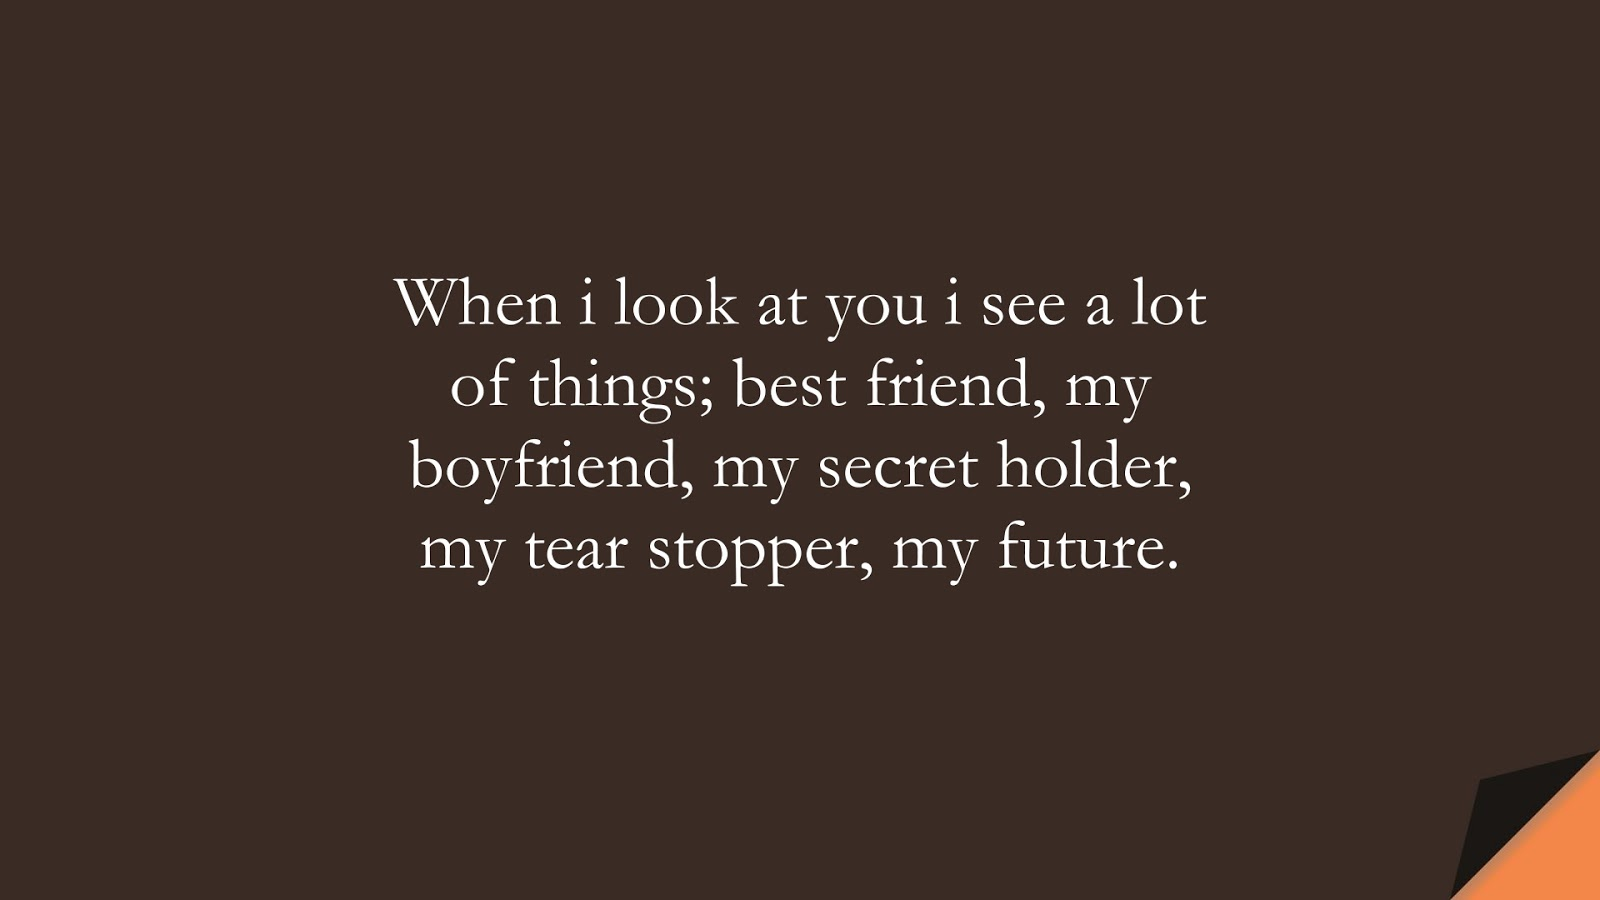 When i look at you i see a lot of things; best friend, my boyfriend, my secret holder, my tear stopper, my future.FALSE